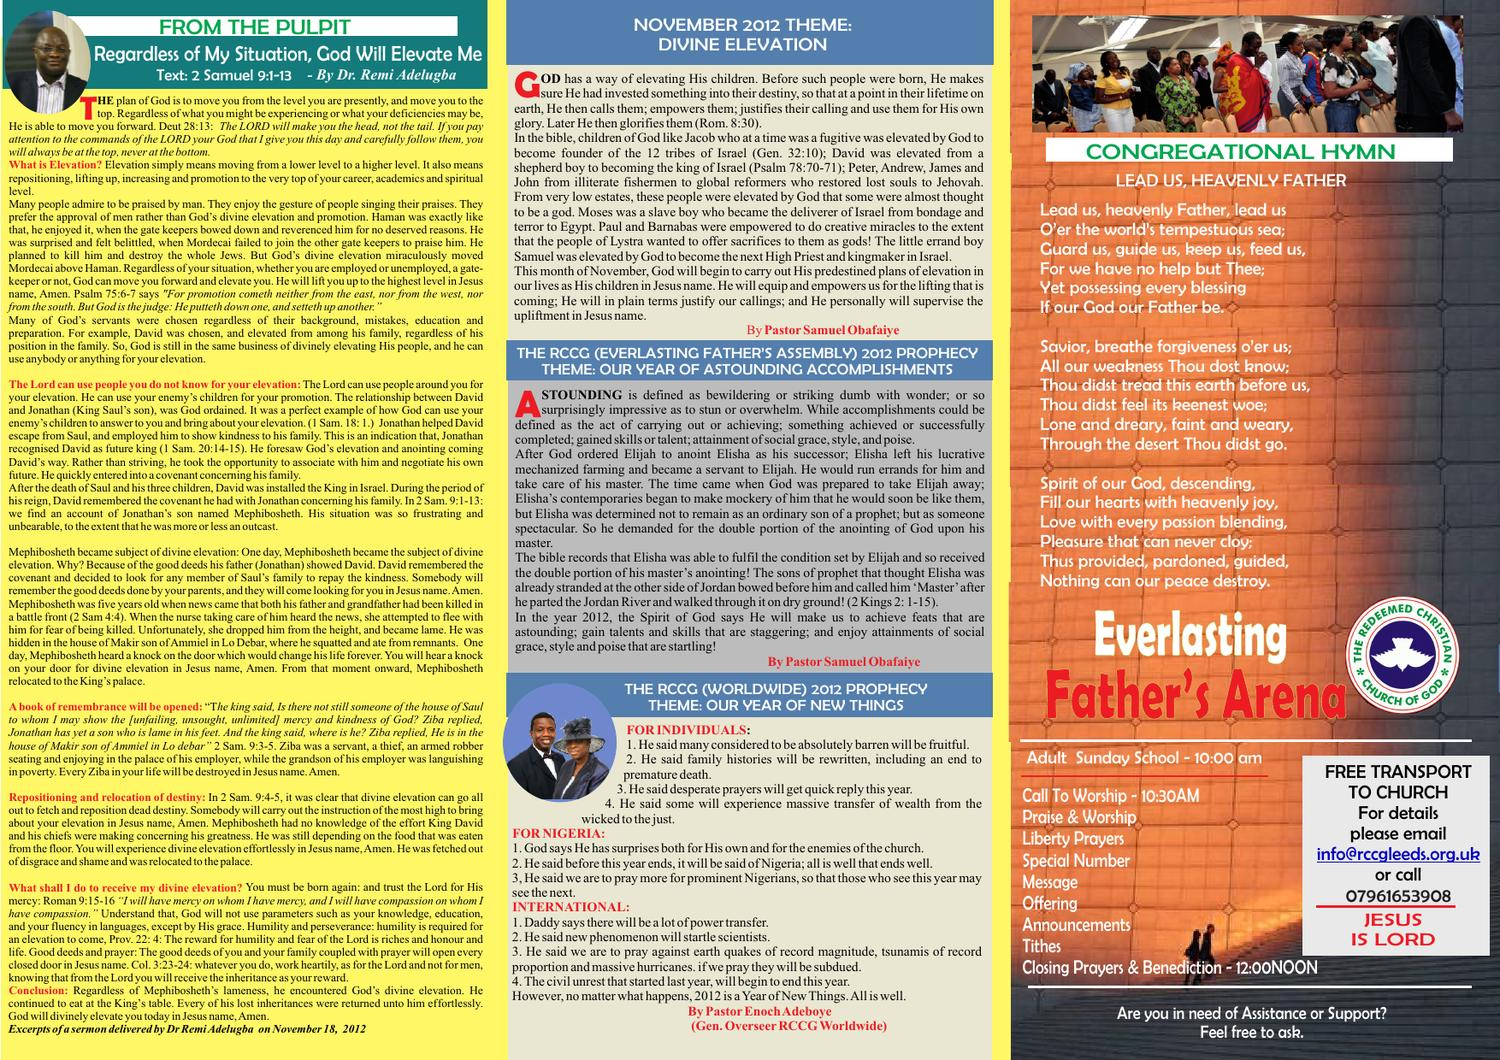 Service Bulletin for RCCG Everlasting Father's Arena, York